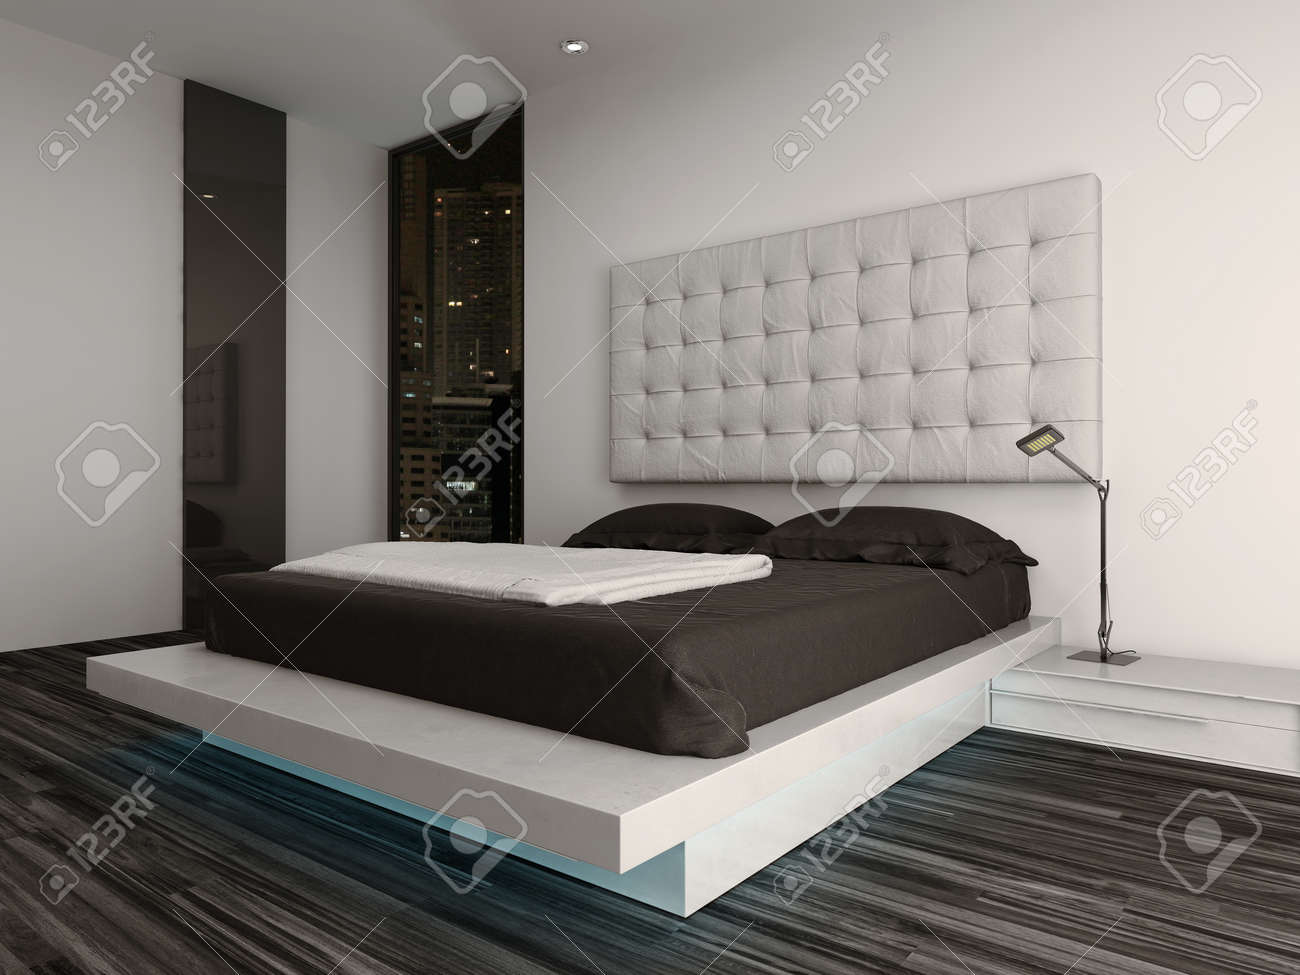 Nice Bedroom Interior With Modern Furniture And Cozy Bed Stock Photo 28283456 Nice Bedroom Interior